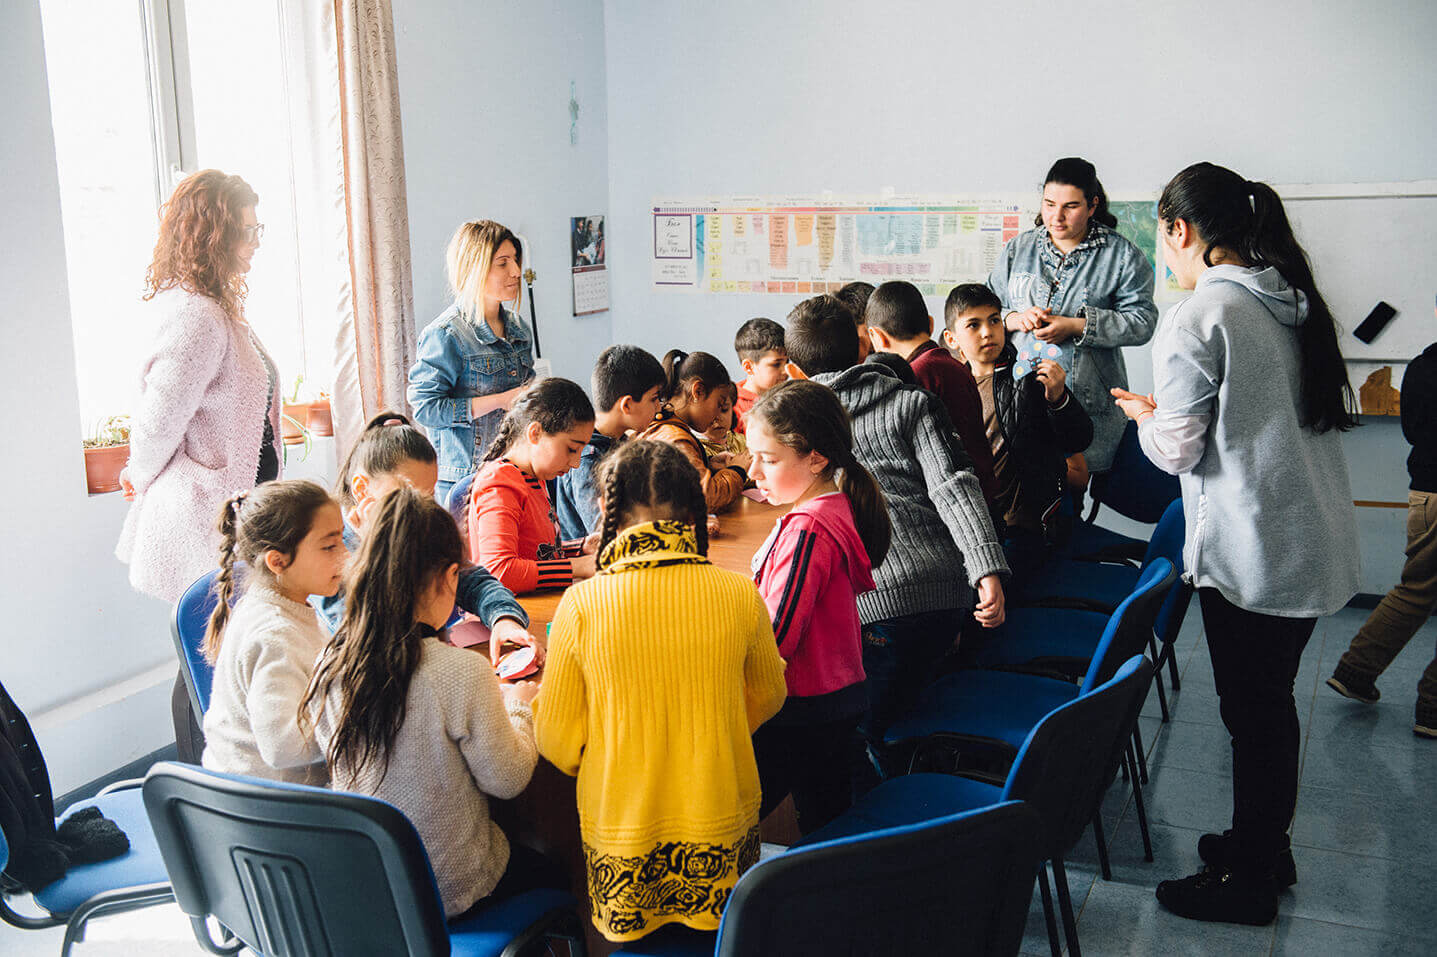 Lilit, standing second from left, leads children's ministry.